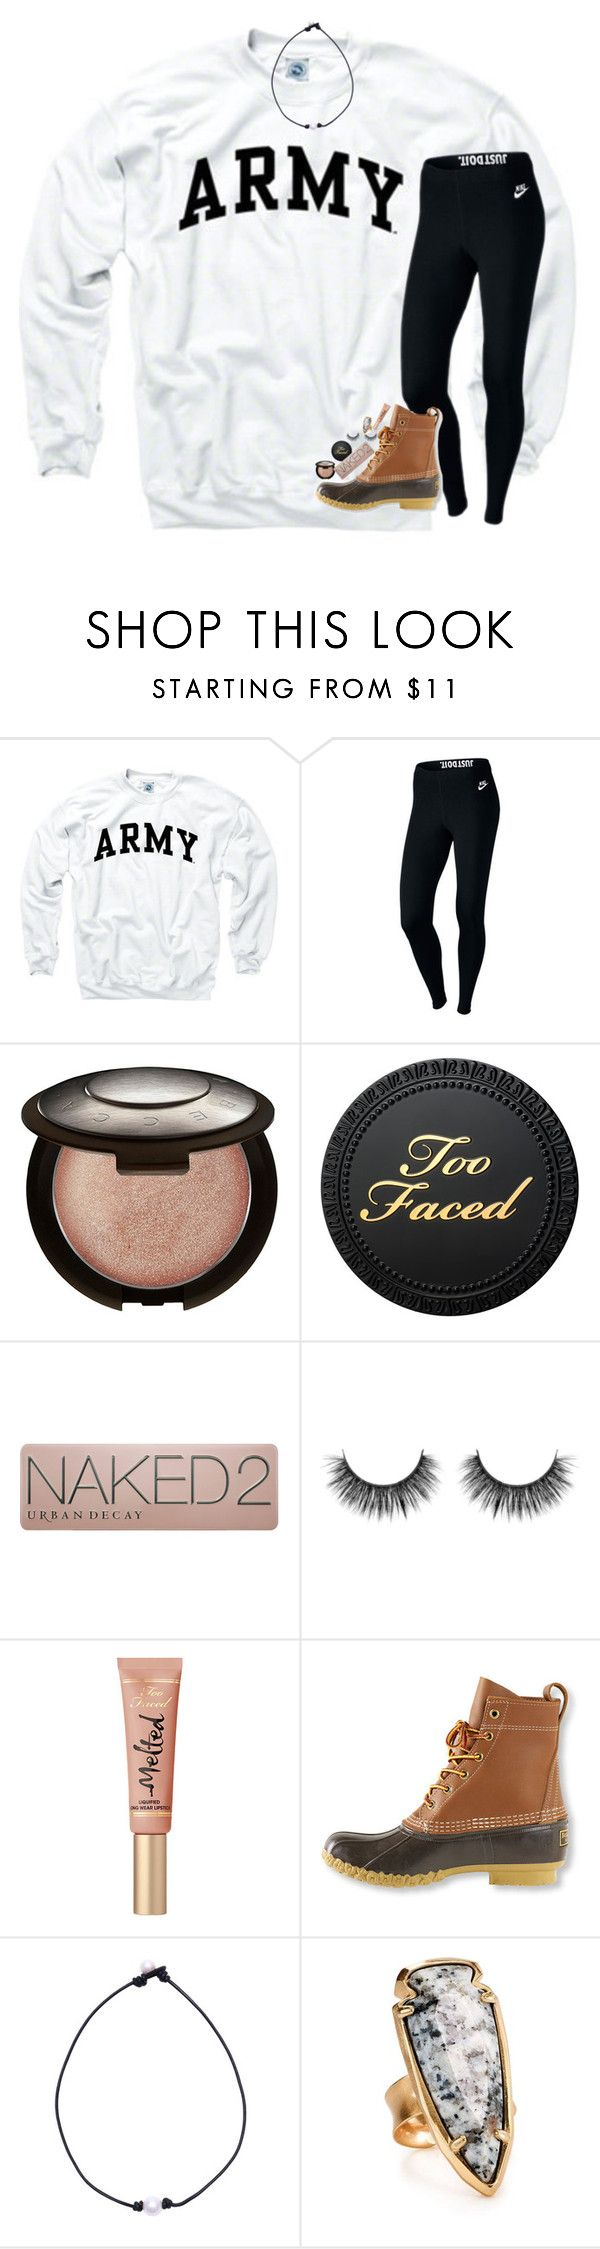 """you don't need no money, salvation is free"" by lindsaygreys ❤ liked on Polyvore featuring NIKE, Becca, Urban Decay, Too Faced Cosmetics, L.L.Bean and Kendra Scott"